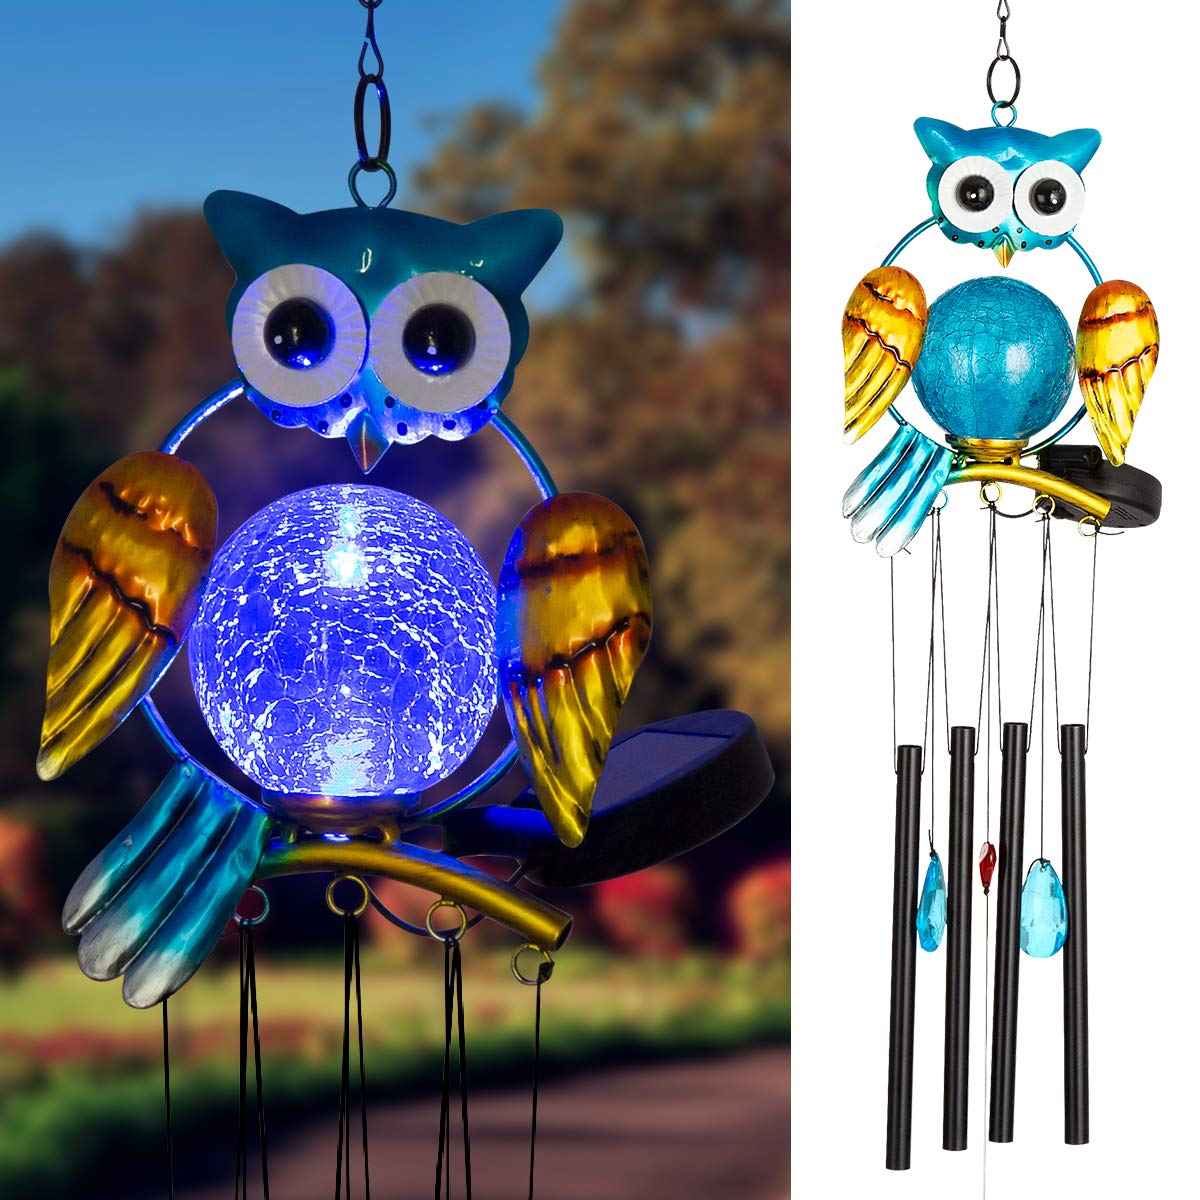 Solpex Solar Owl Wind Chimes Outdoor,36.6'' LED Light Chime with 4 Hollow Aluminium Tubes for Home,Patio, Lawn and Yard Décor.